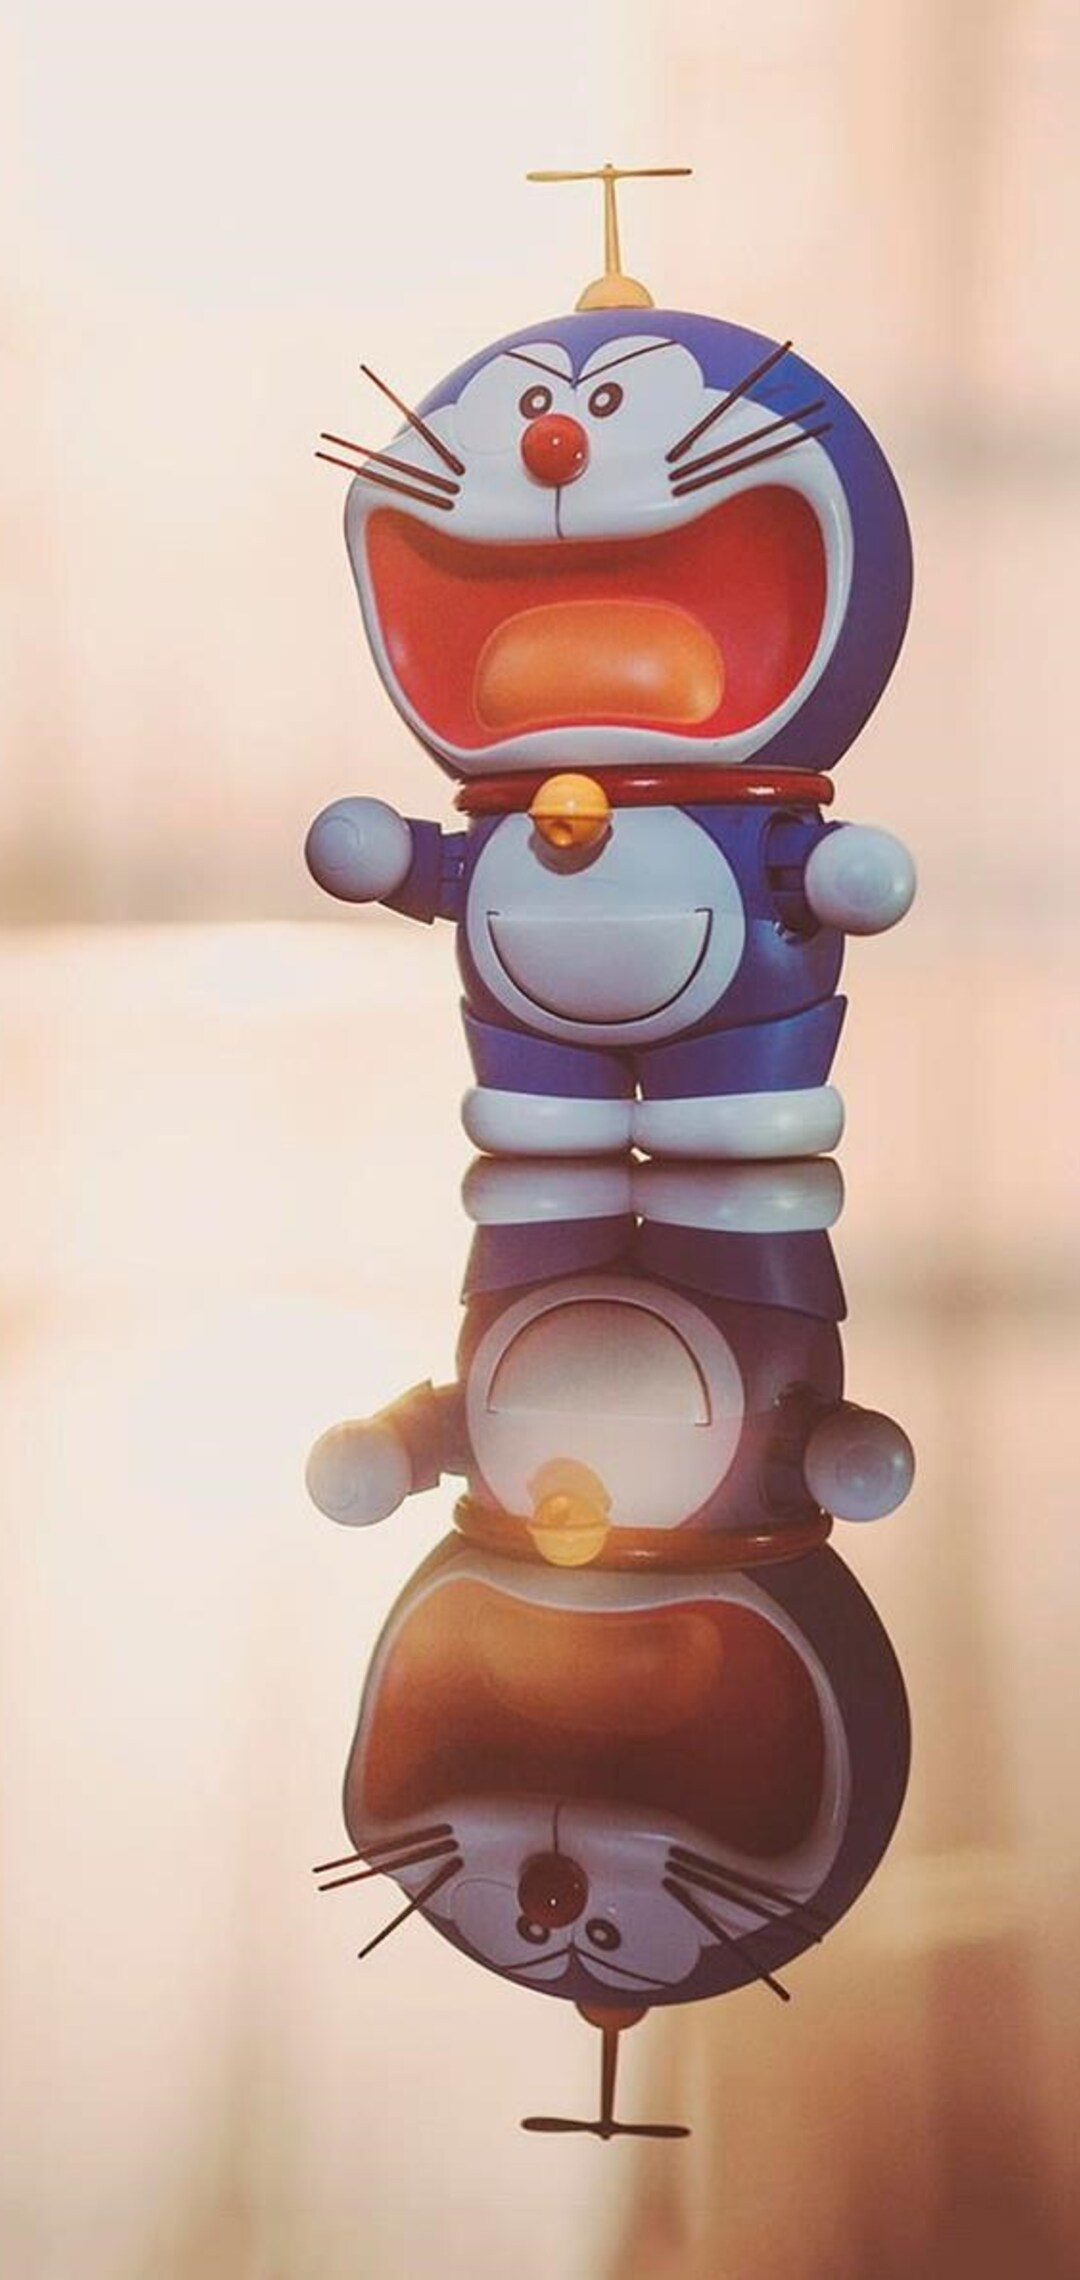 2000+ Wallpaper Doraemon Xiaomi HD Paling Baru